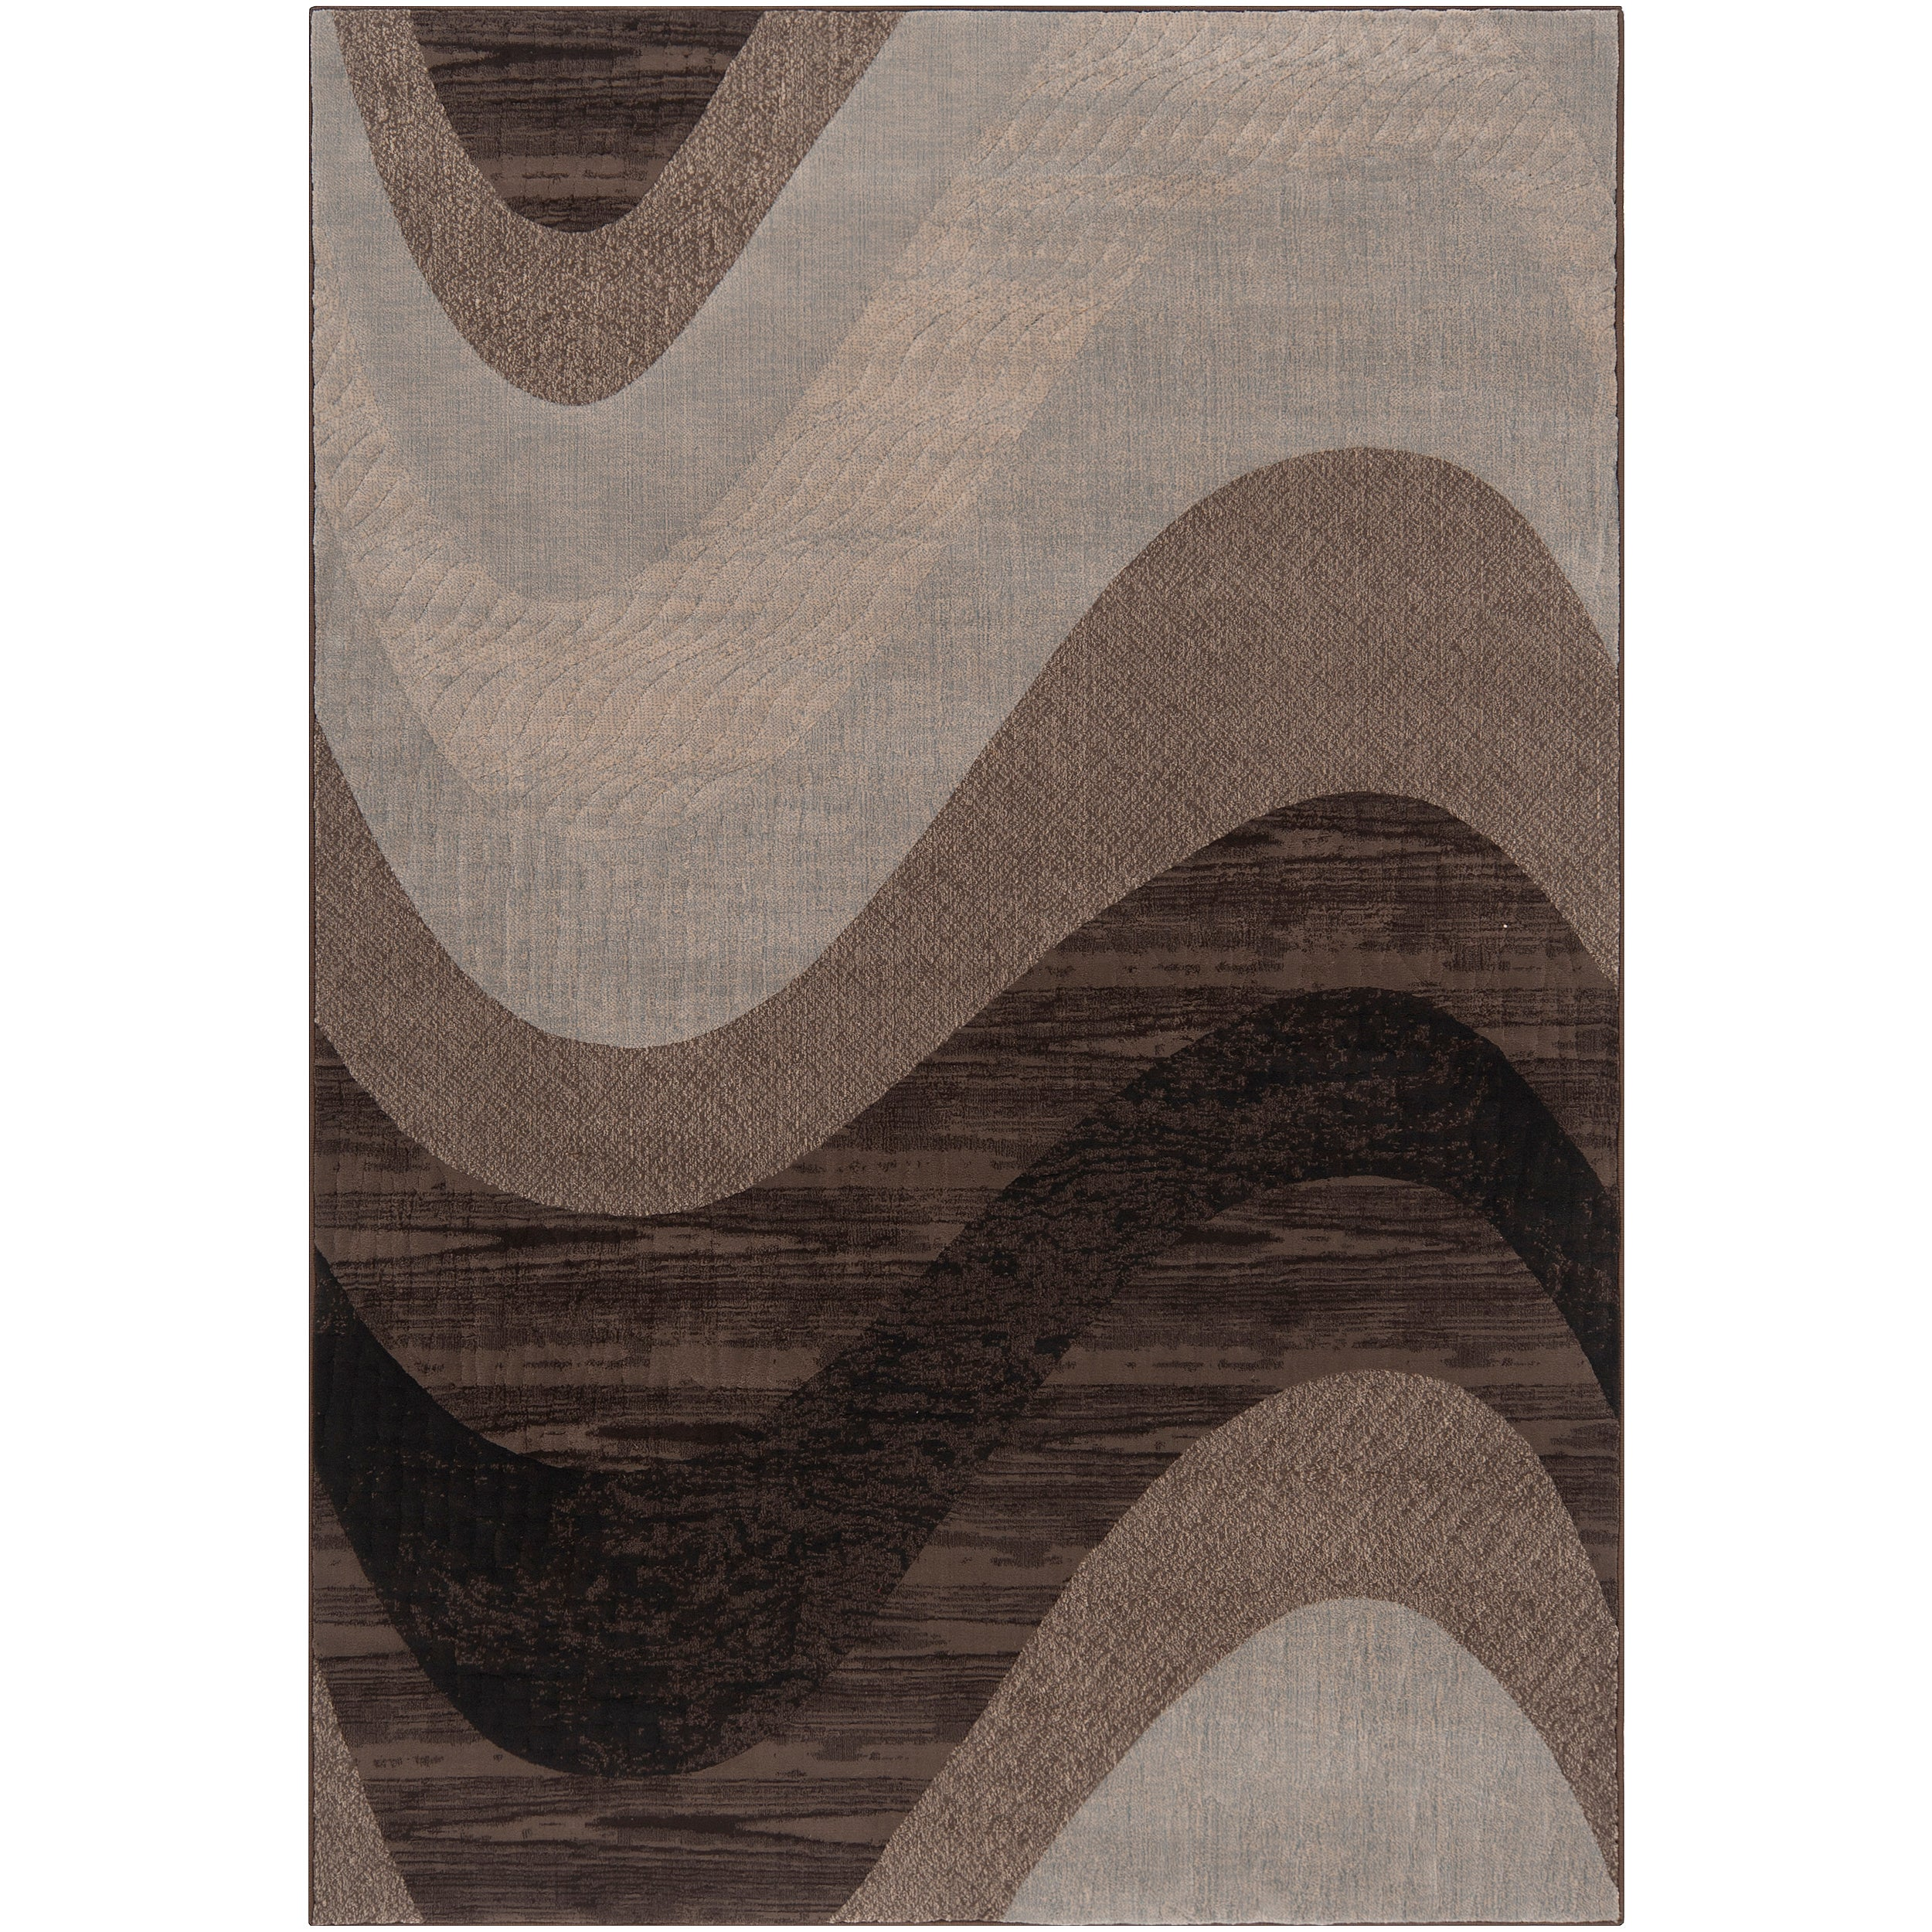 Woven Neutral Toned Haines Abstract Waves Rug (1'10 x 2'11)